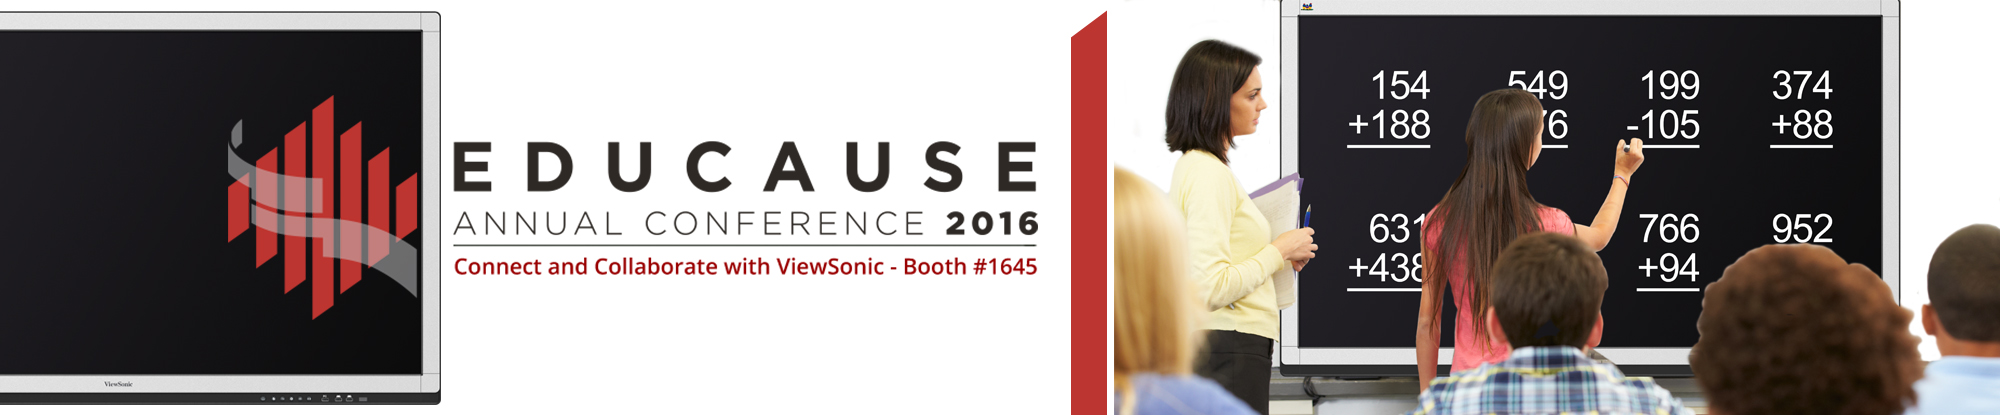 ViewSonic Showcases Collaboration Solutions at EDUCAUSE 2016 with Award-Winning Interactive Displays and Projectors